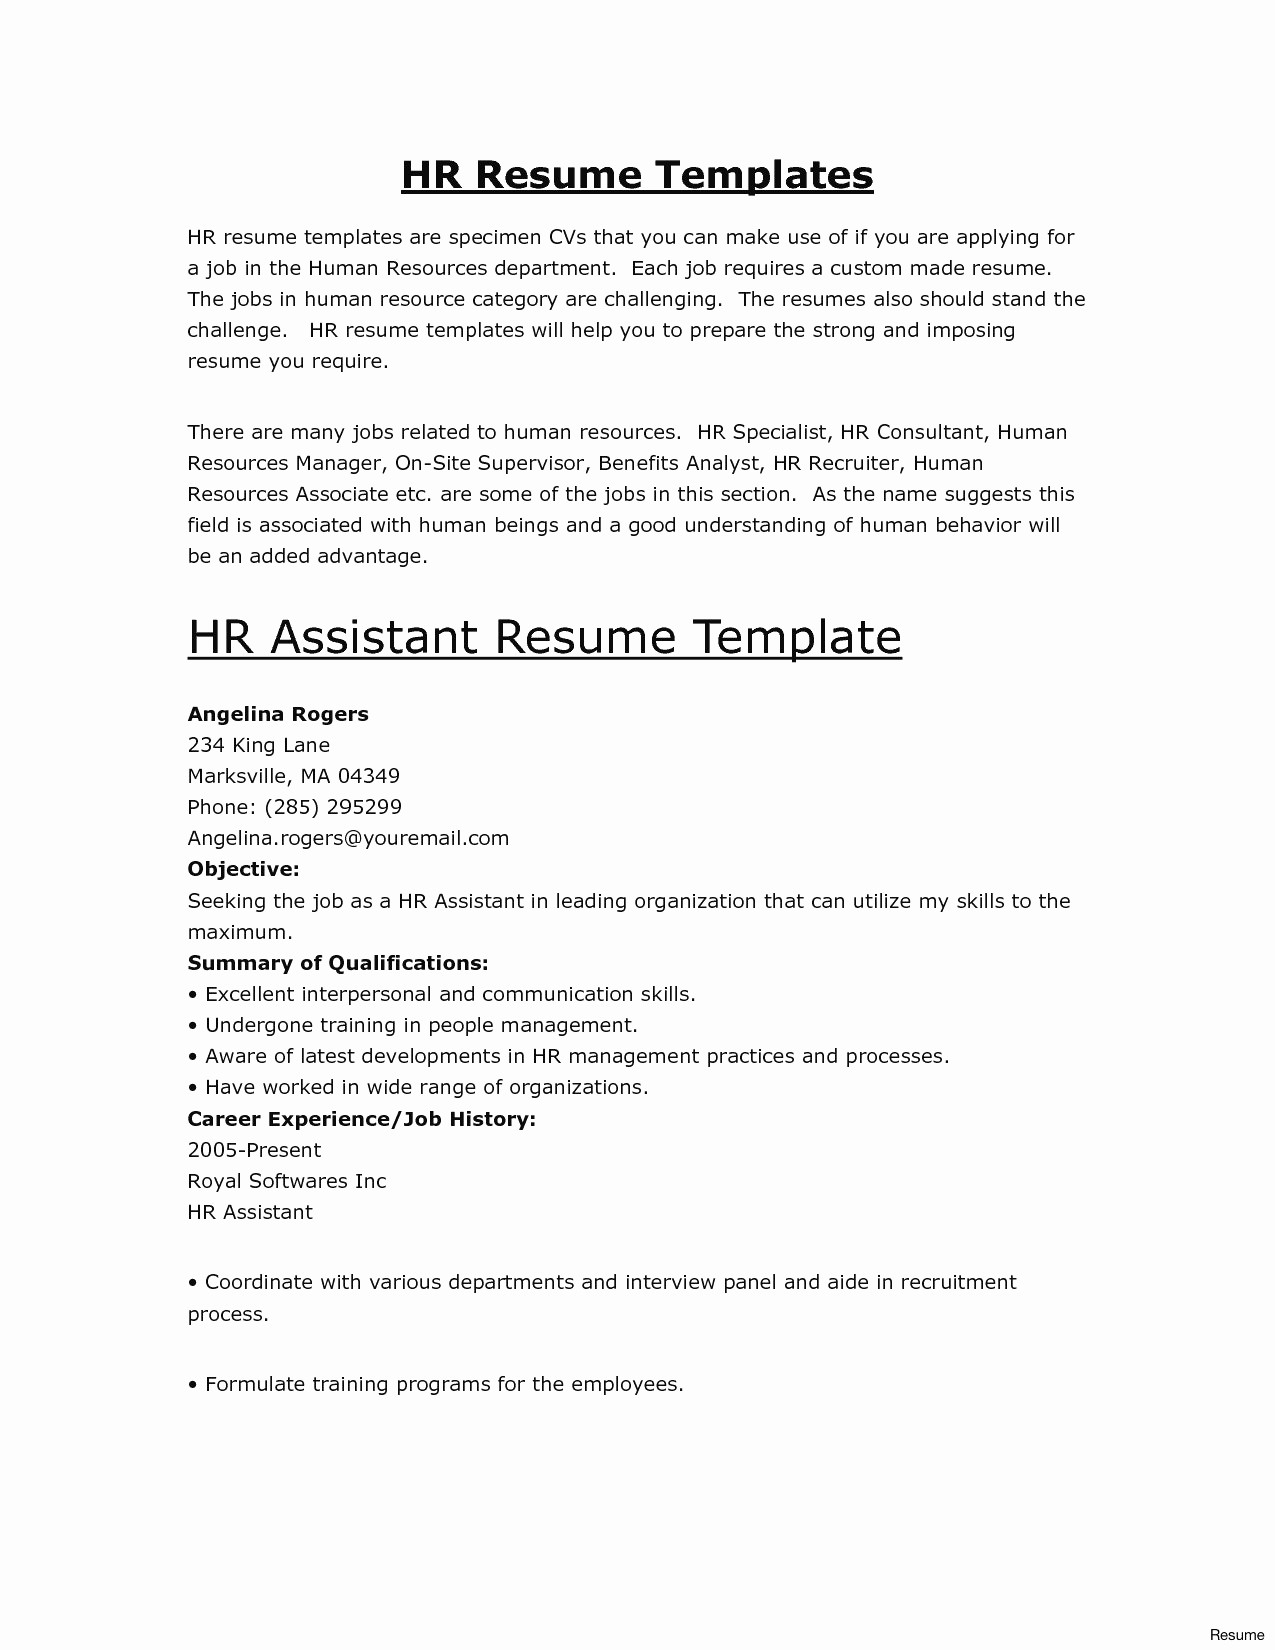 Employment Verification Letter Sample and Template - Inspirational Employment Verification Letter Template